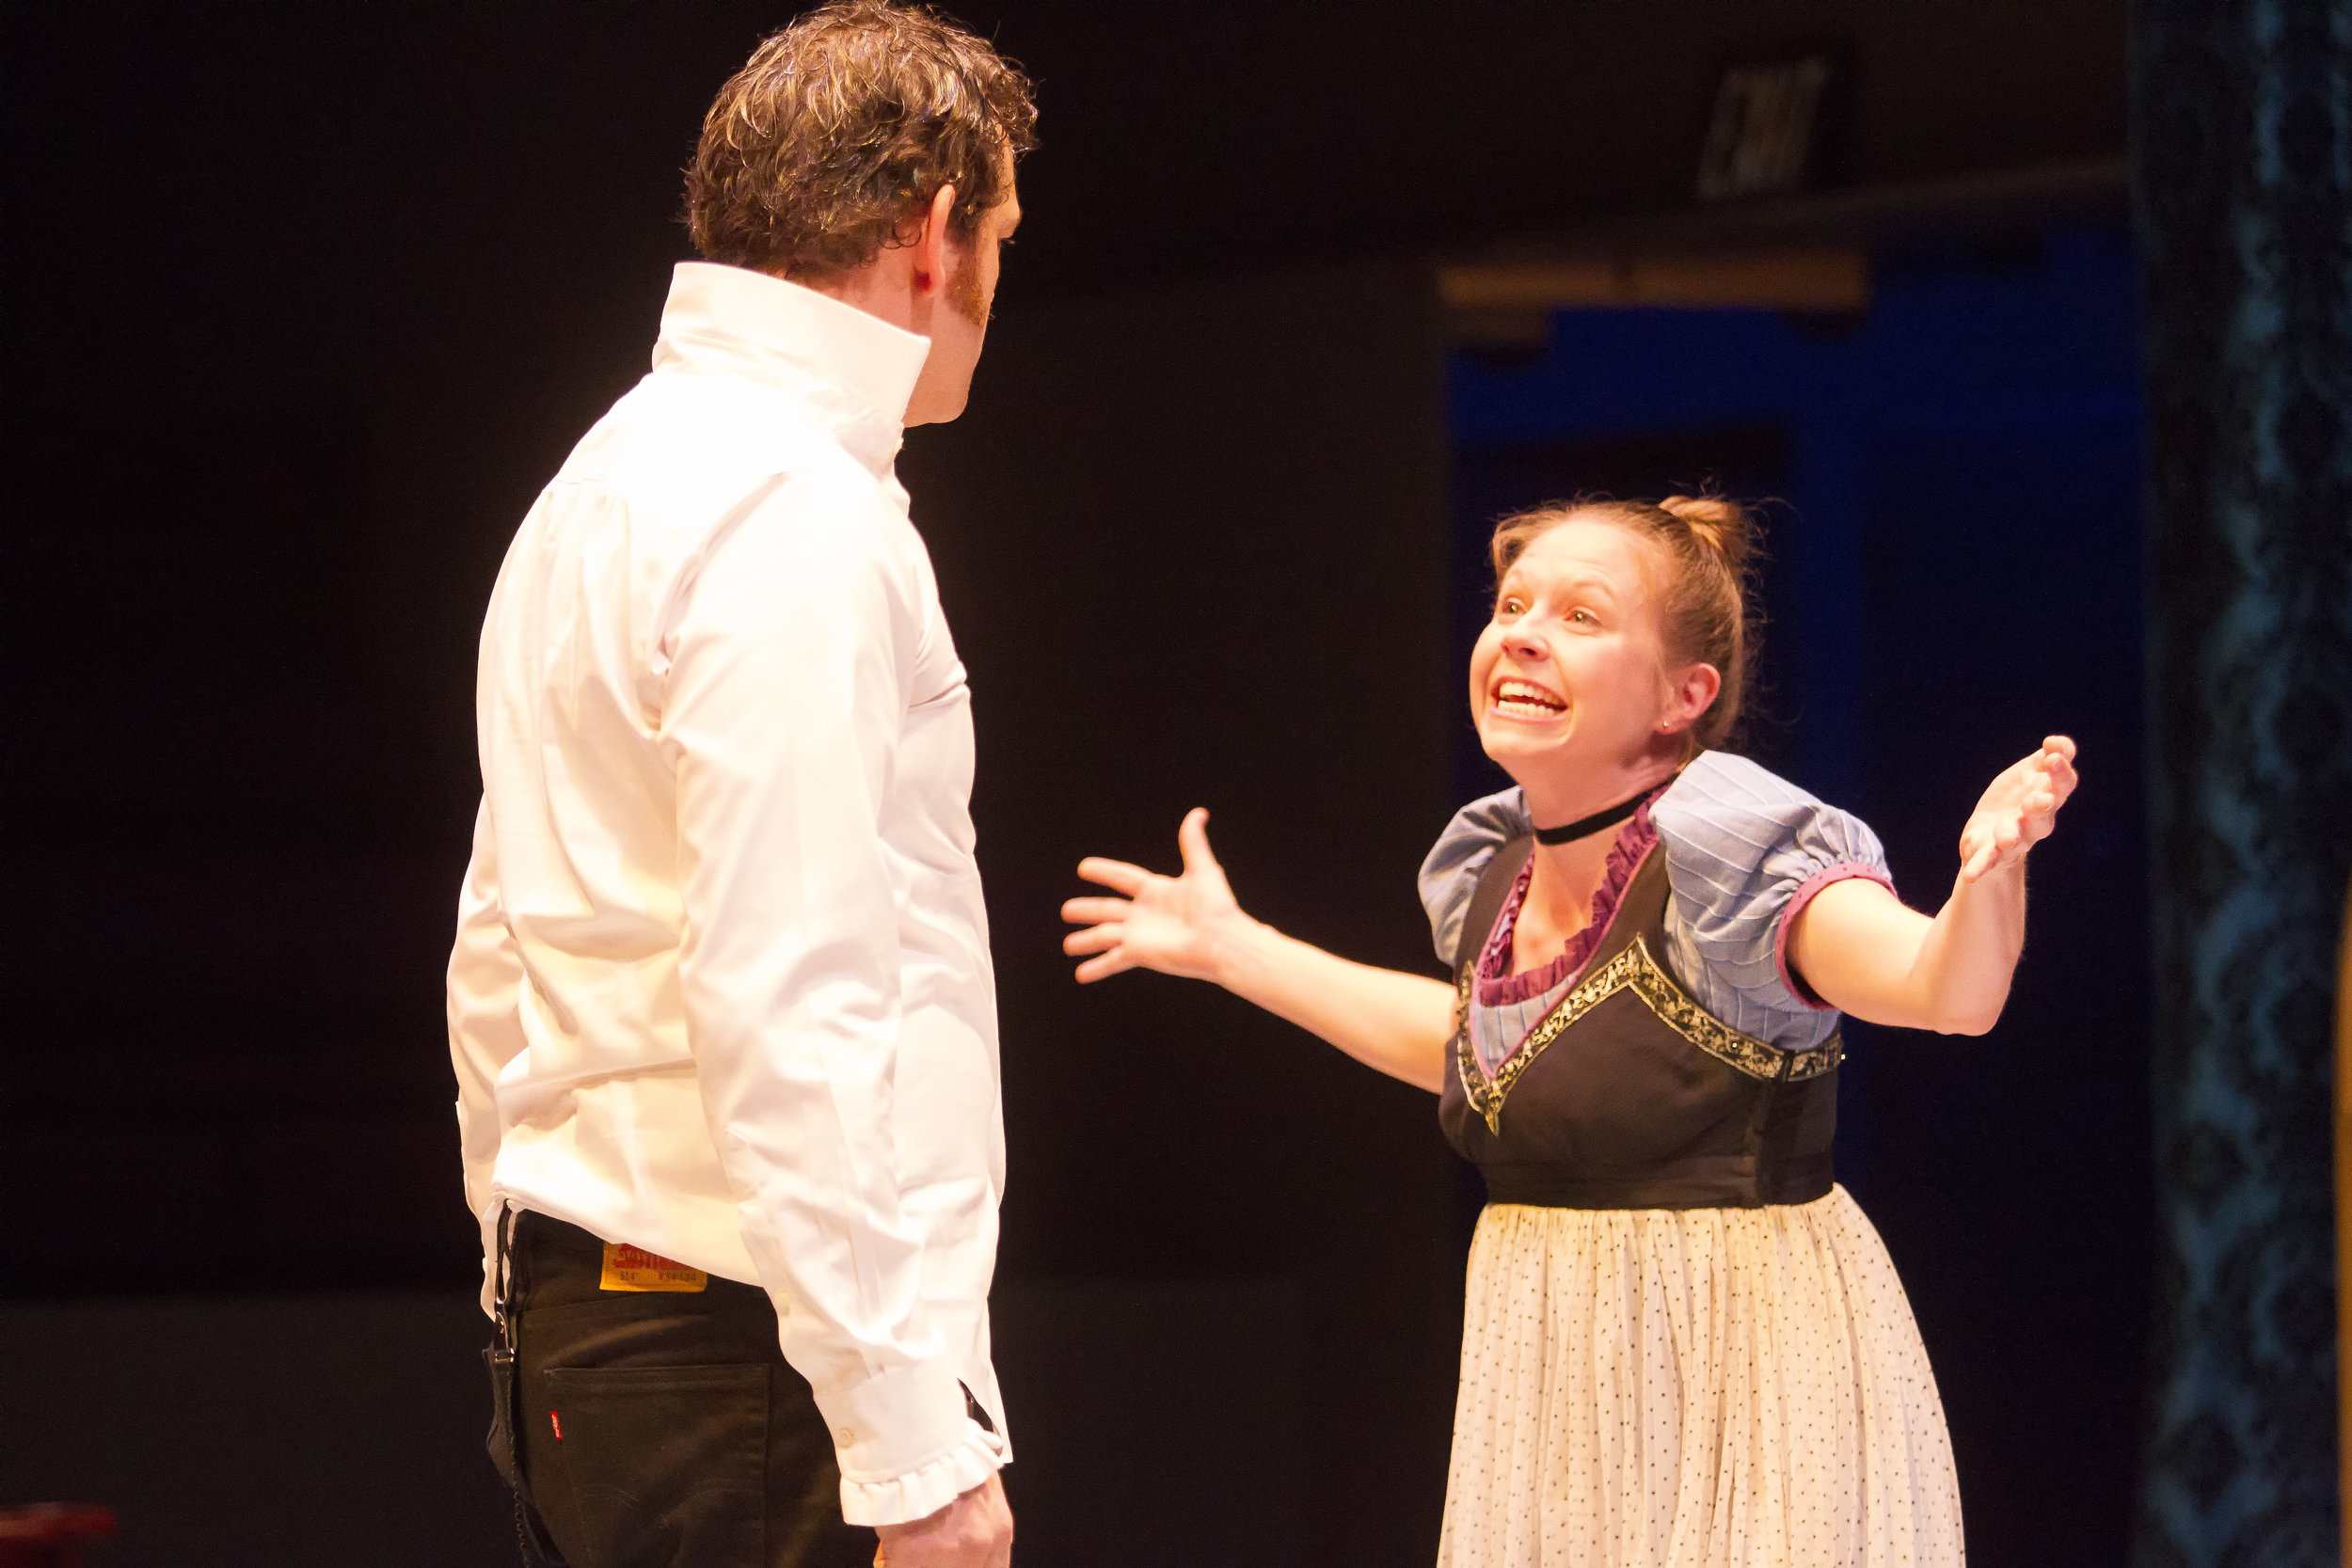 John-Michael Marrs and Jenny Ledel in PRIDE AND PREJUDICE at WaterTower Theatre photo by Jason Anderson.jpg